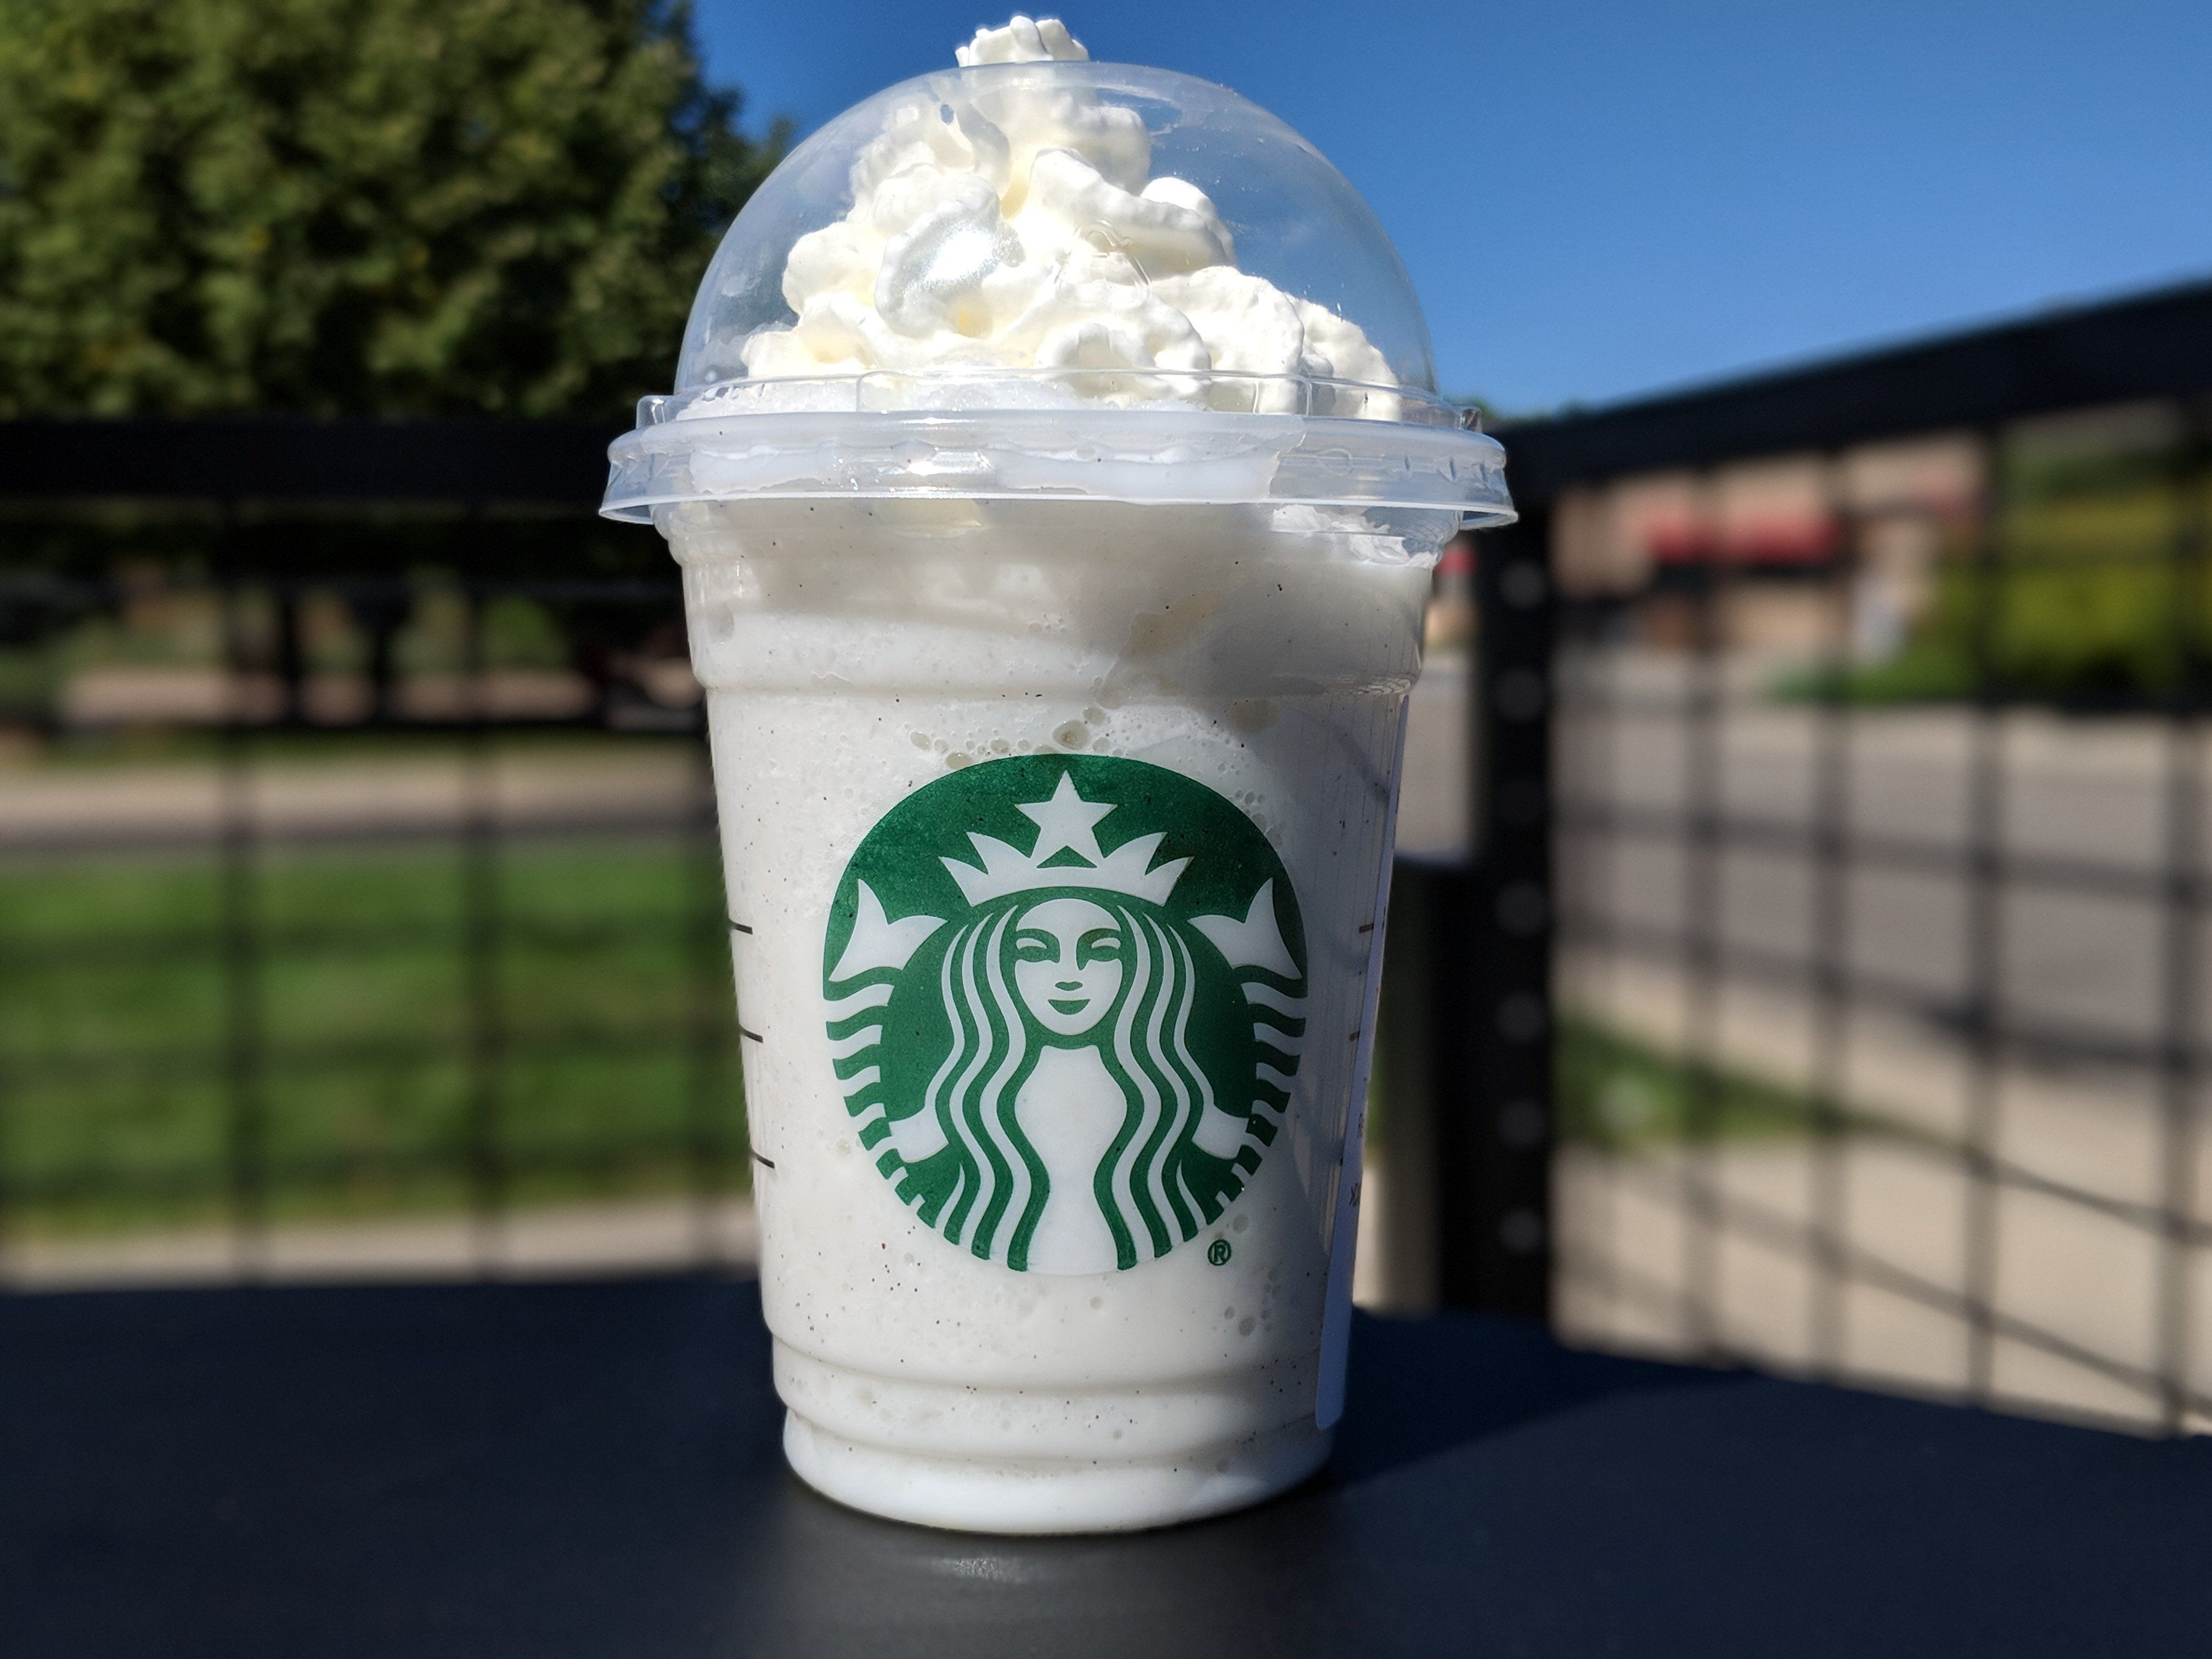 This Cotton Candy Frappuccino is indeed available if you think to ask for it.